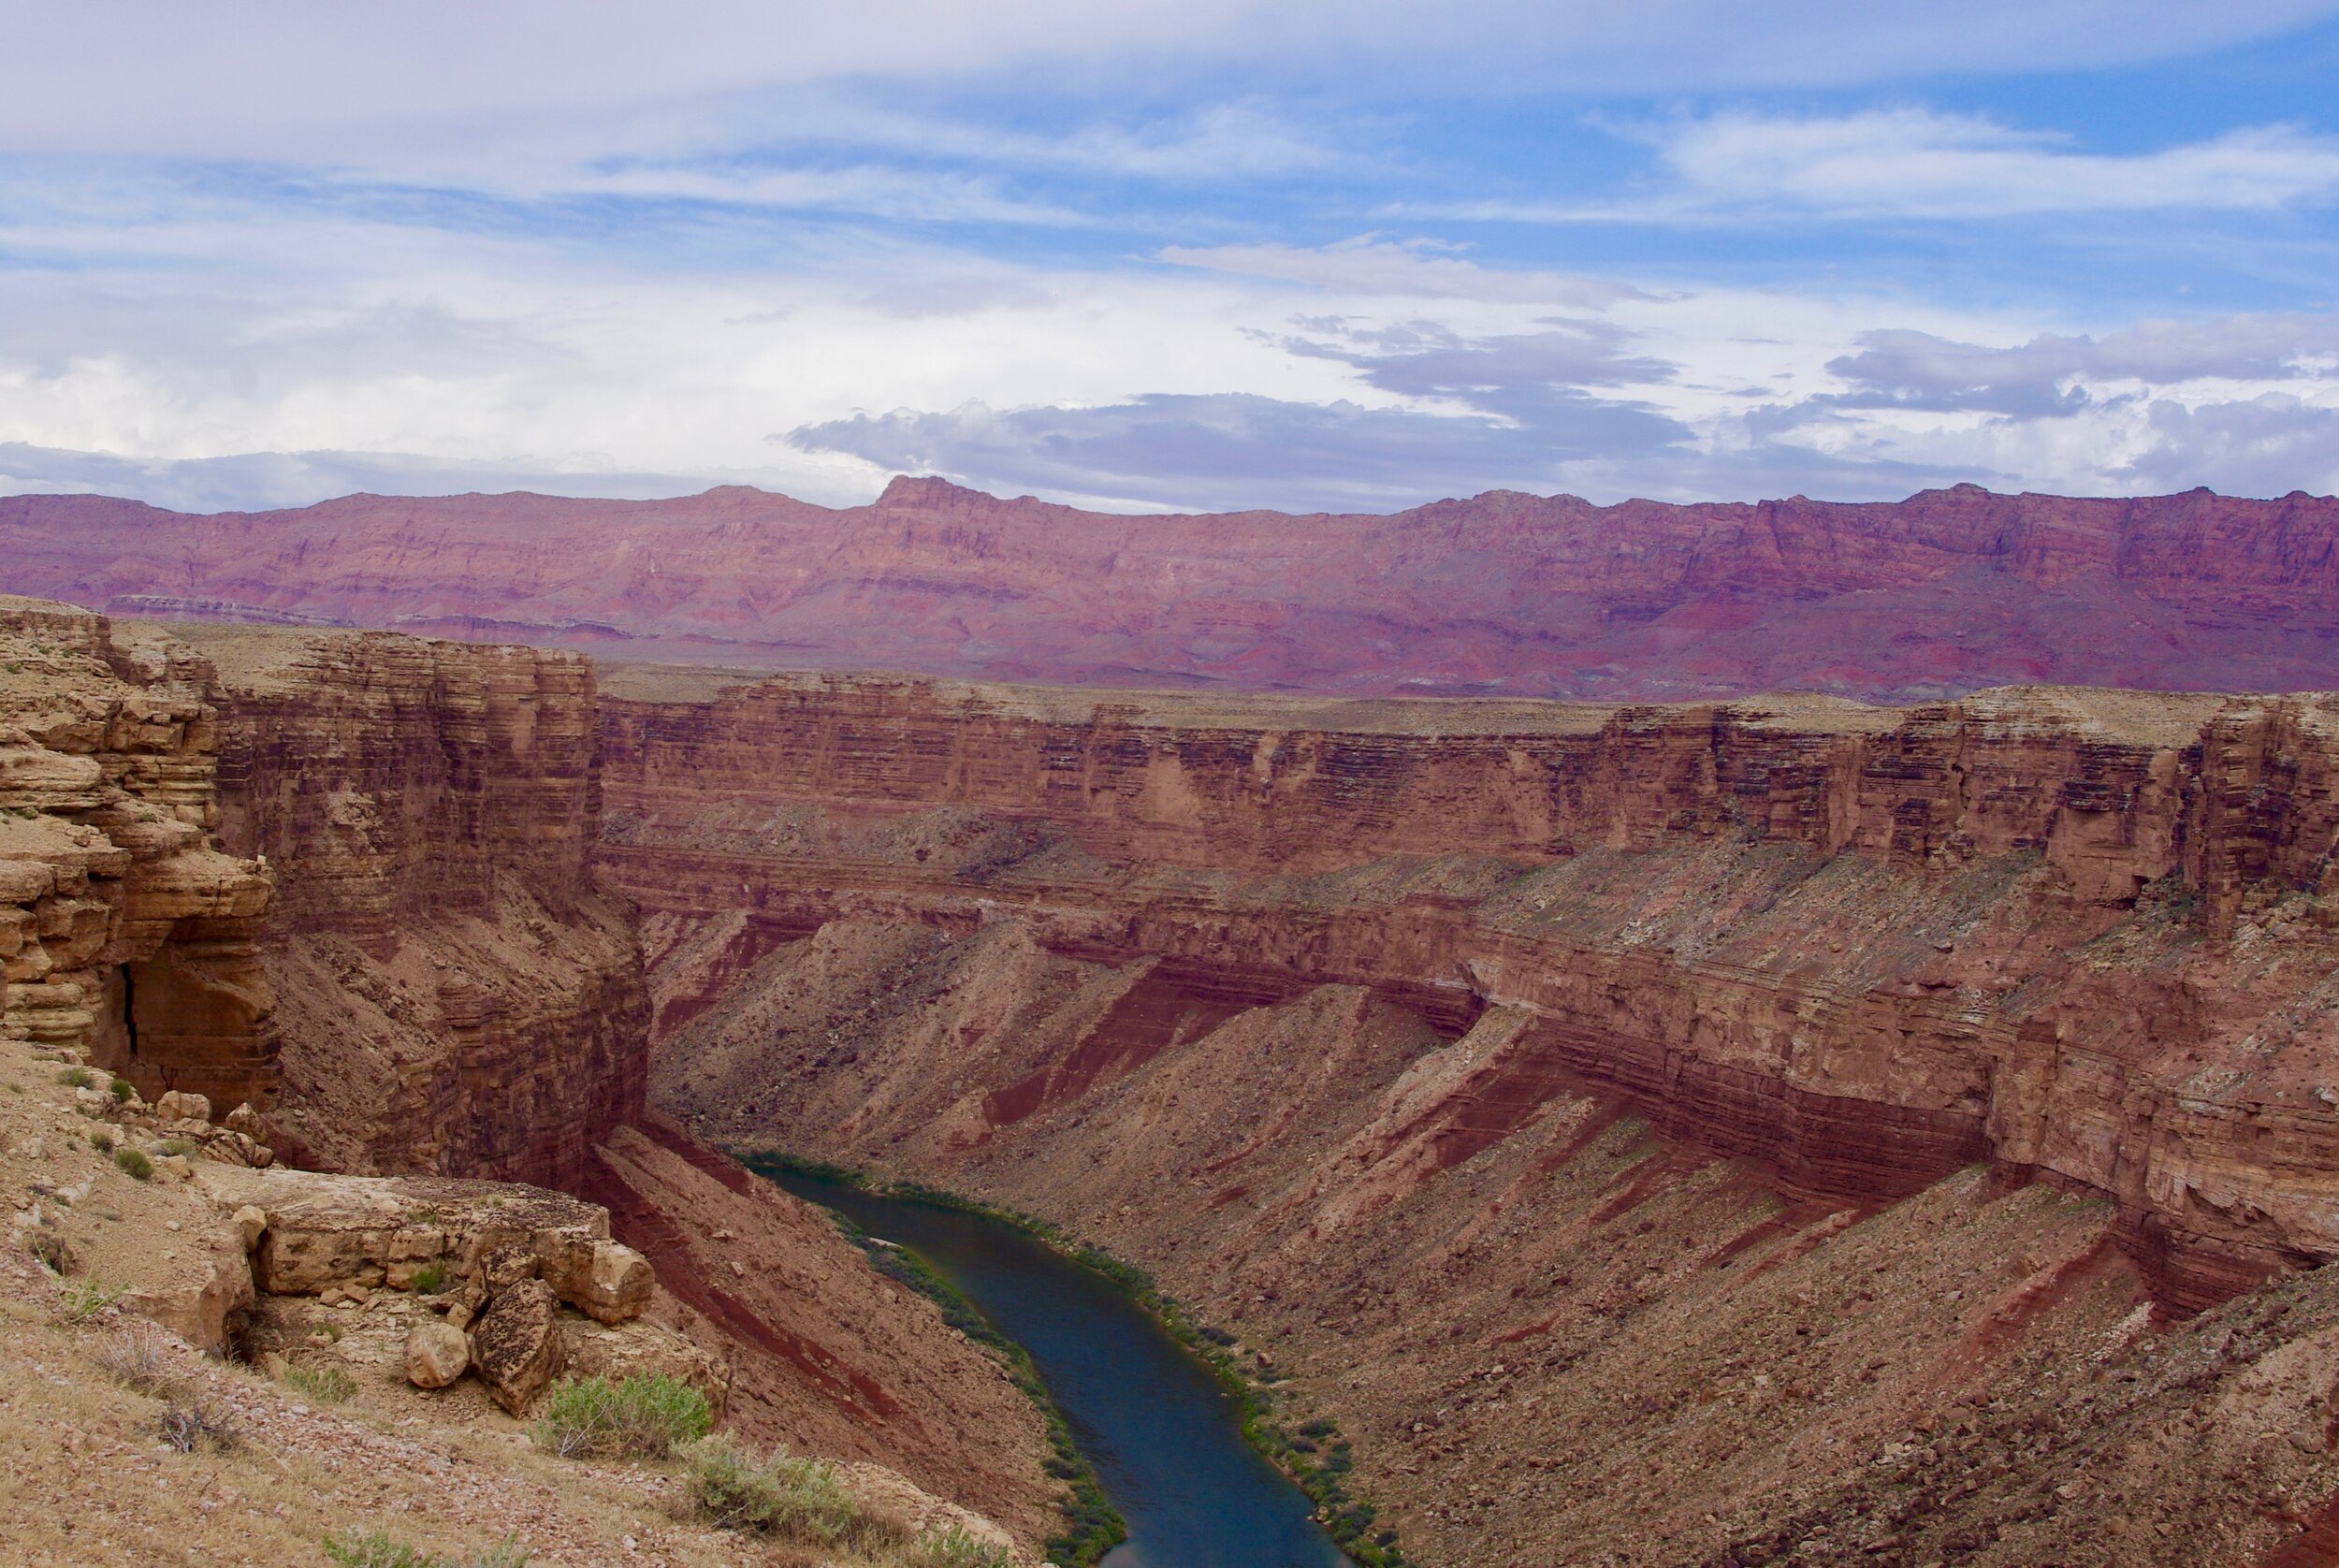 Here is the Colorado flowing through Marble Canyon with some more vermillion cliffs in the background. It looks more like a drainage ditch than the Mighty Colorado. Let us contrast this view with the below, which is the only glimpse of the Colorado that I could get from the top of the Grand Canyon…and believe you me, it was hard to find. I shot it with a 200 mm telephoto lens because otherwise it would have been invisible.